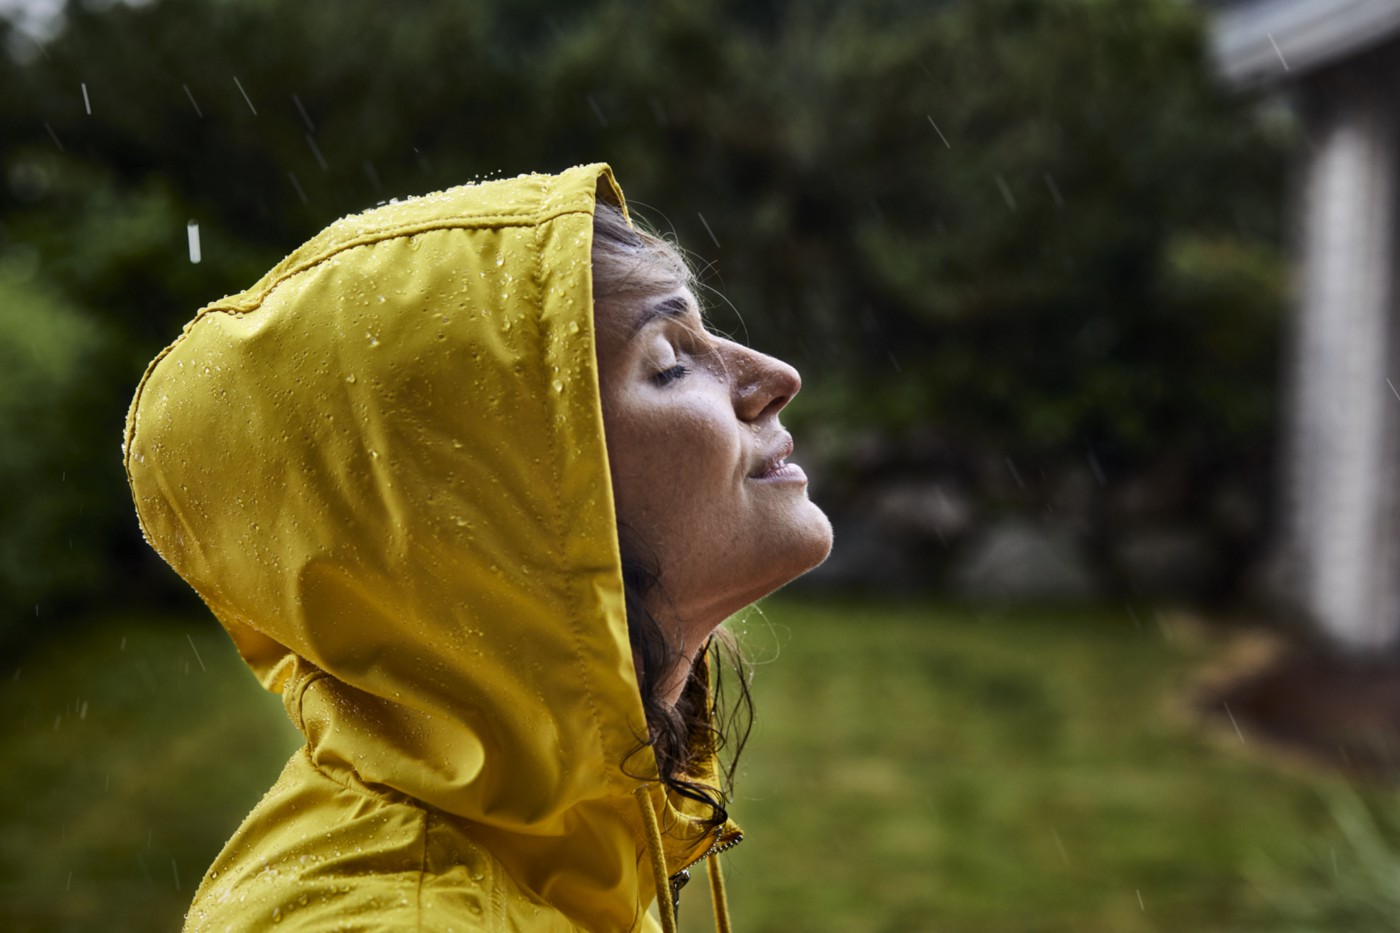 A photo of a woman wearing a raincoat and hood. She is standing in the rain with her eyes closed, looking peaceful.